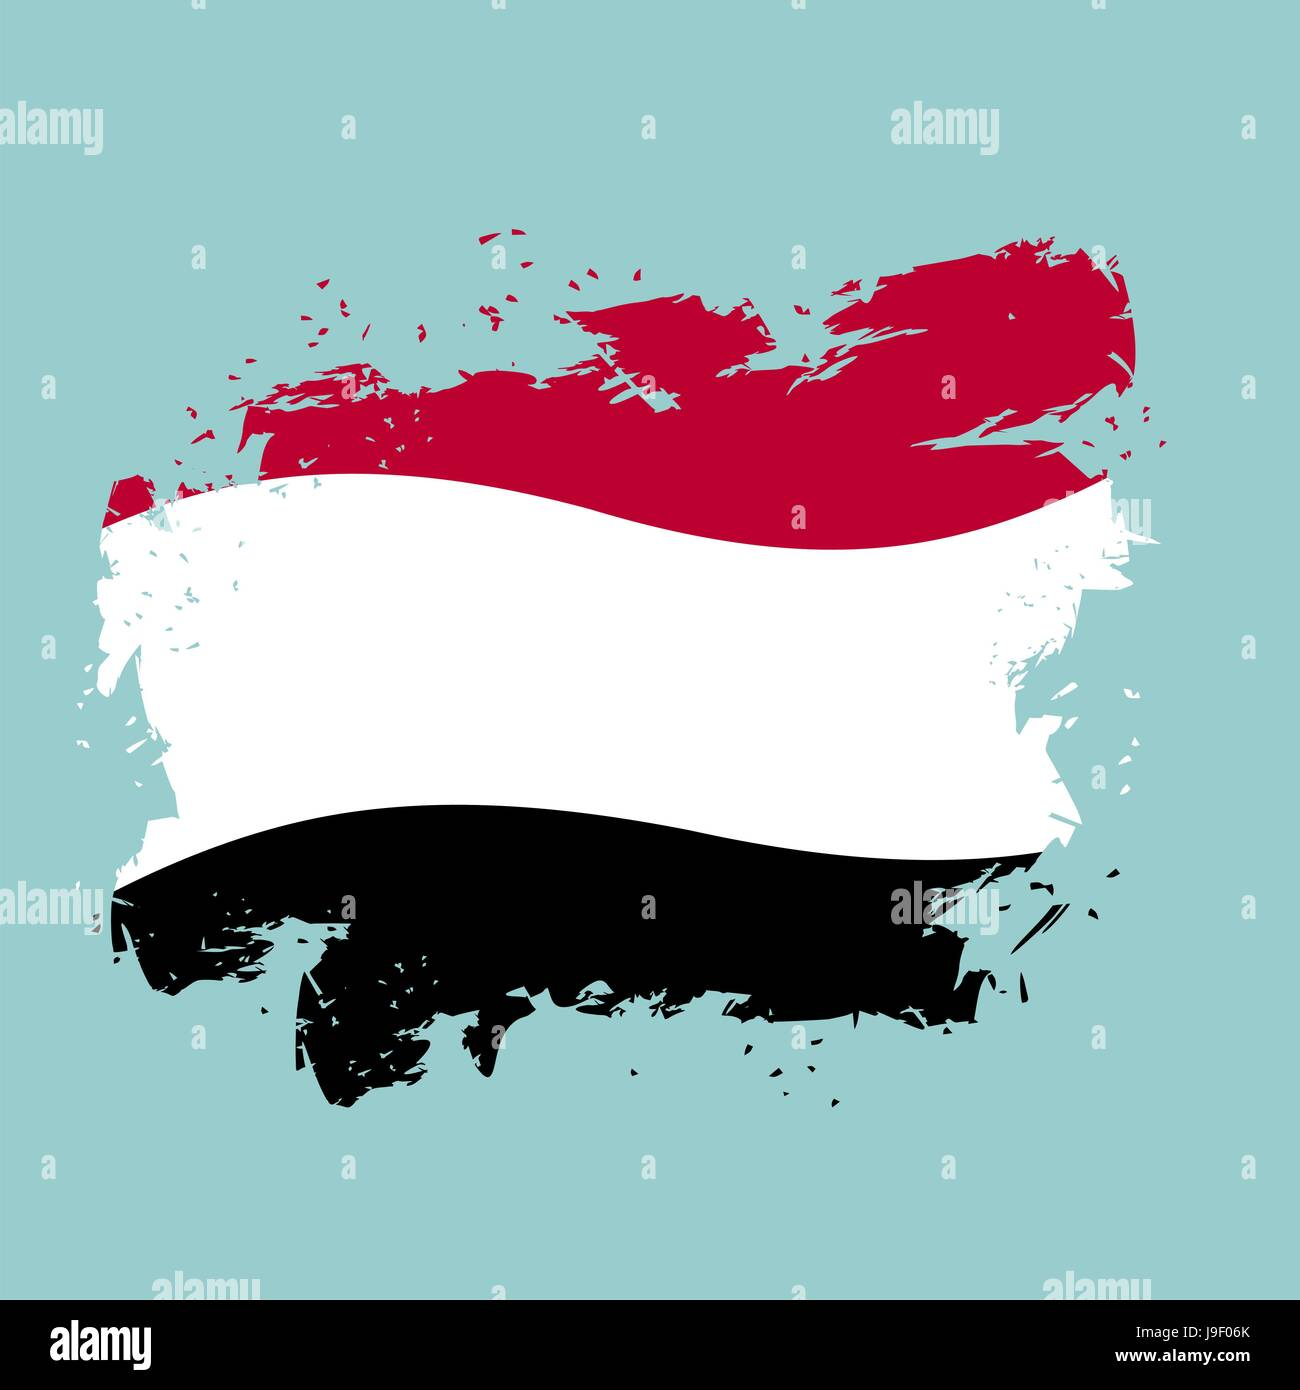 Yemen flag grunge style on blue background. Brush strokes and ink splatter. National symbol of Yemeni government Stock Vector